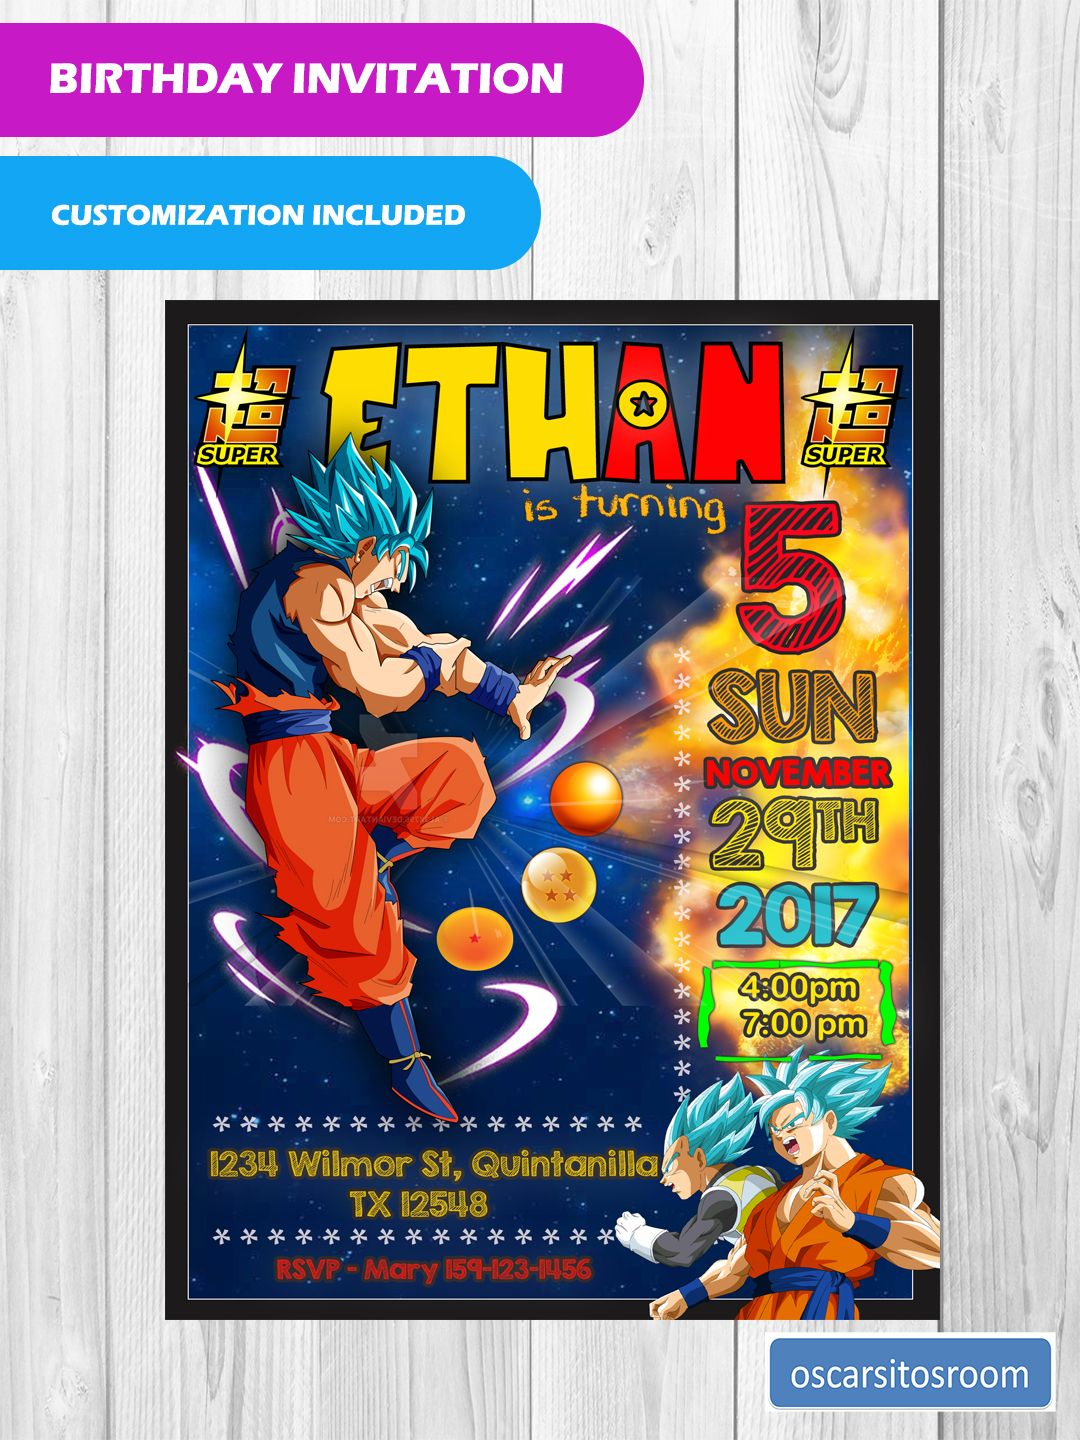 Ball Birthday Parties Kids Party Invitations 8th Decorations Dragon